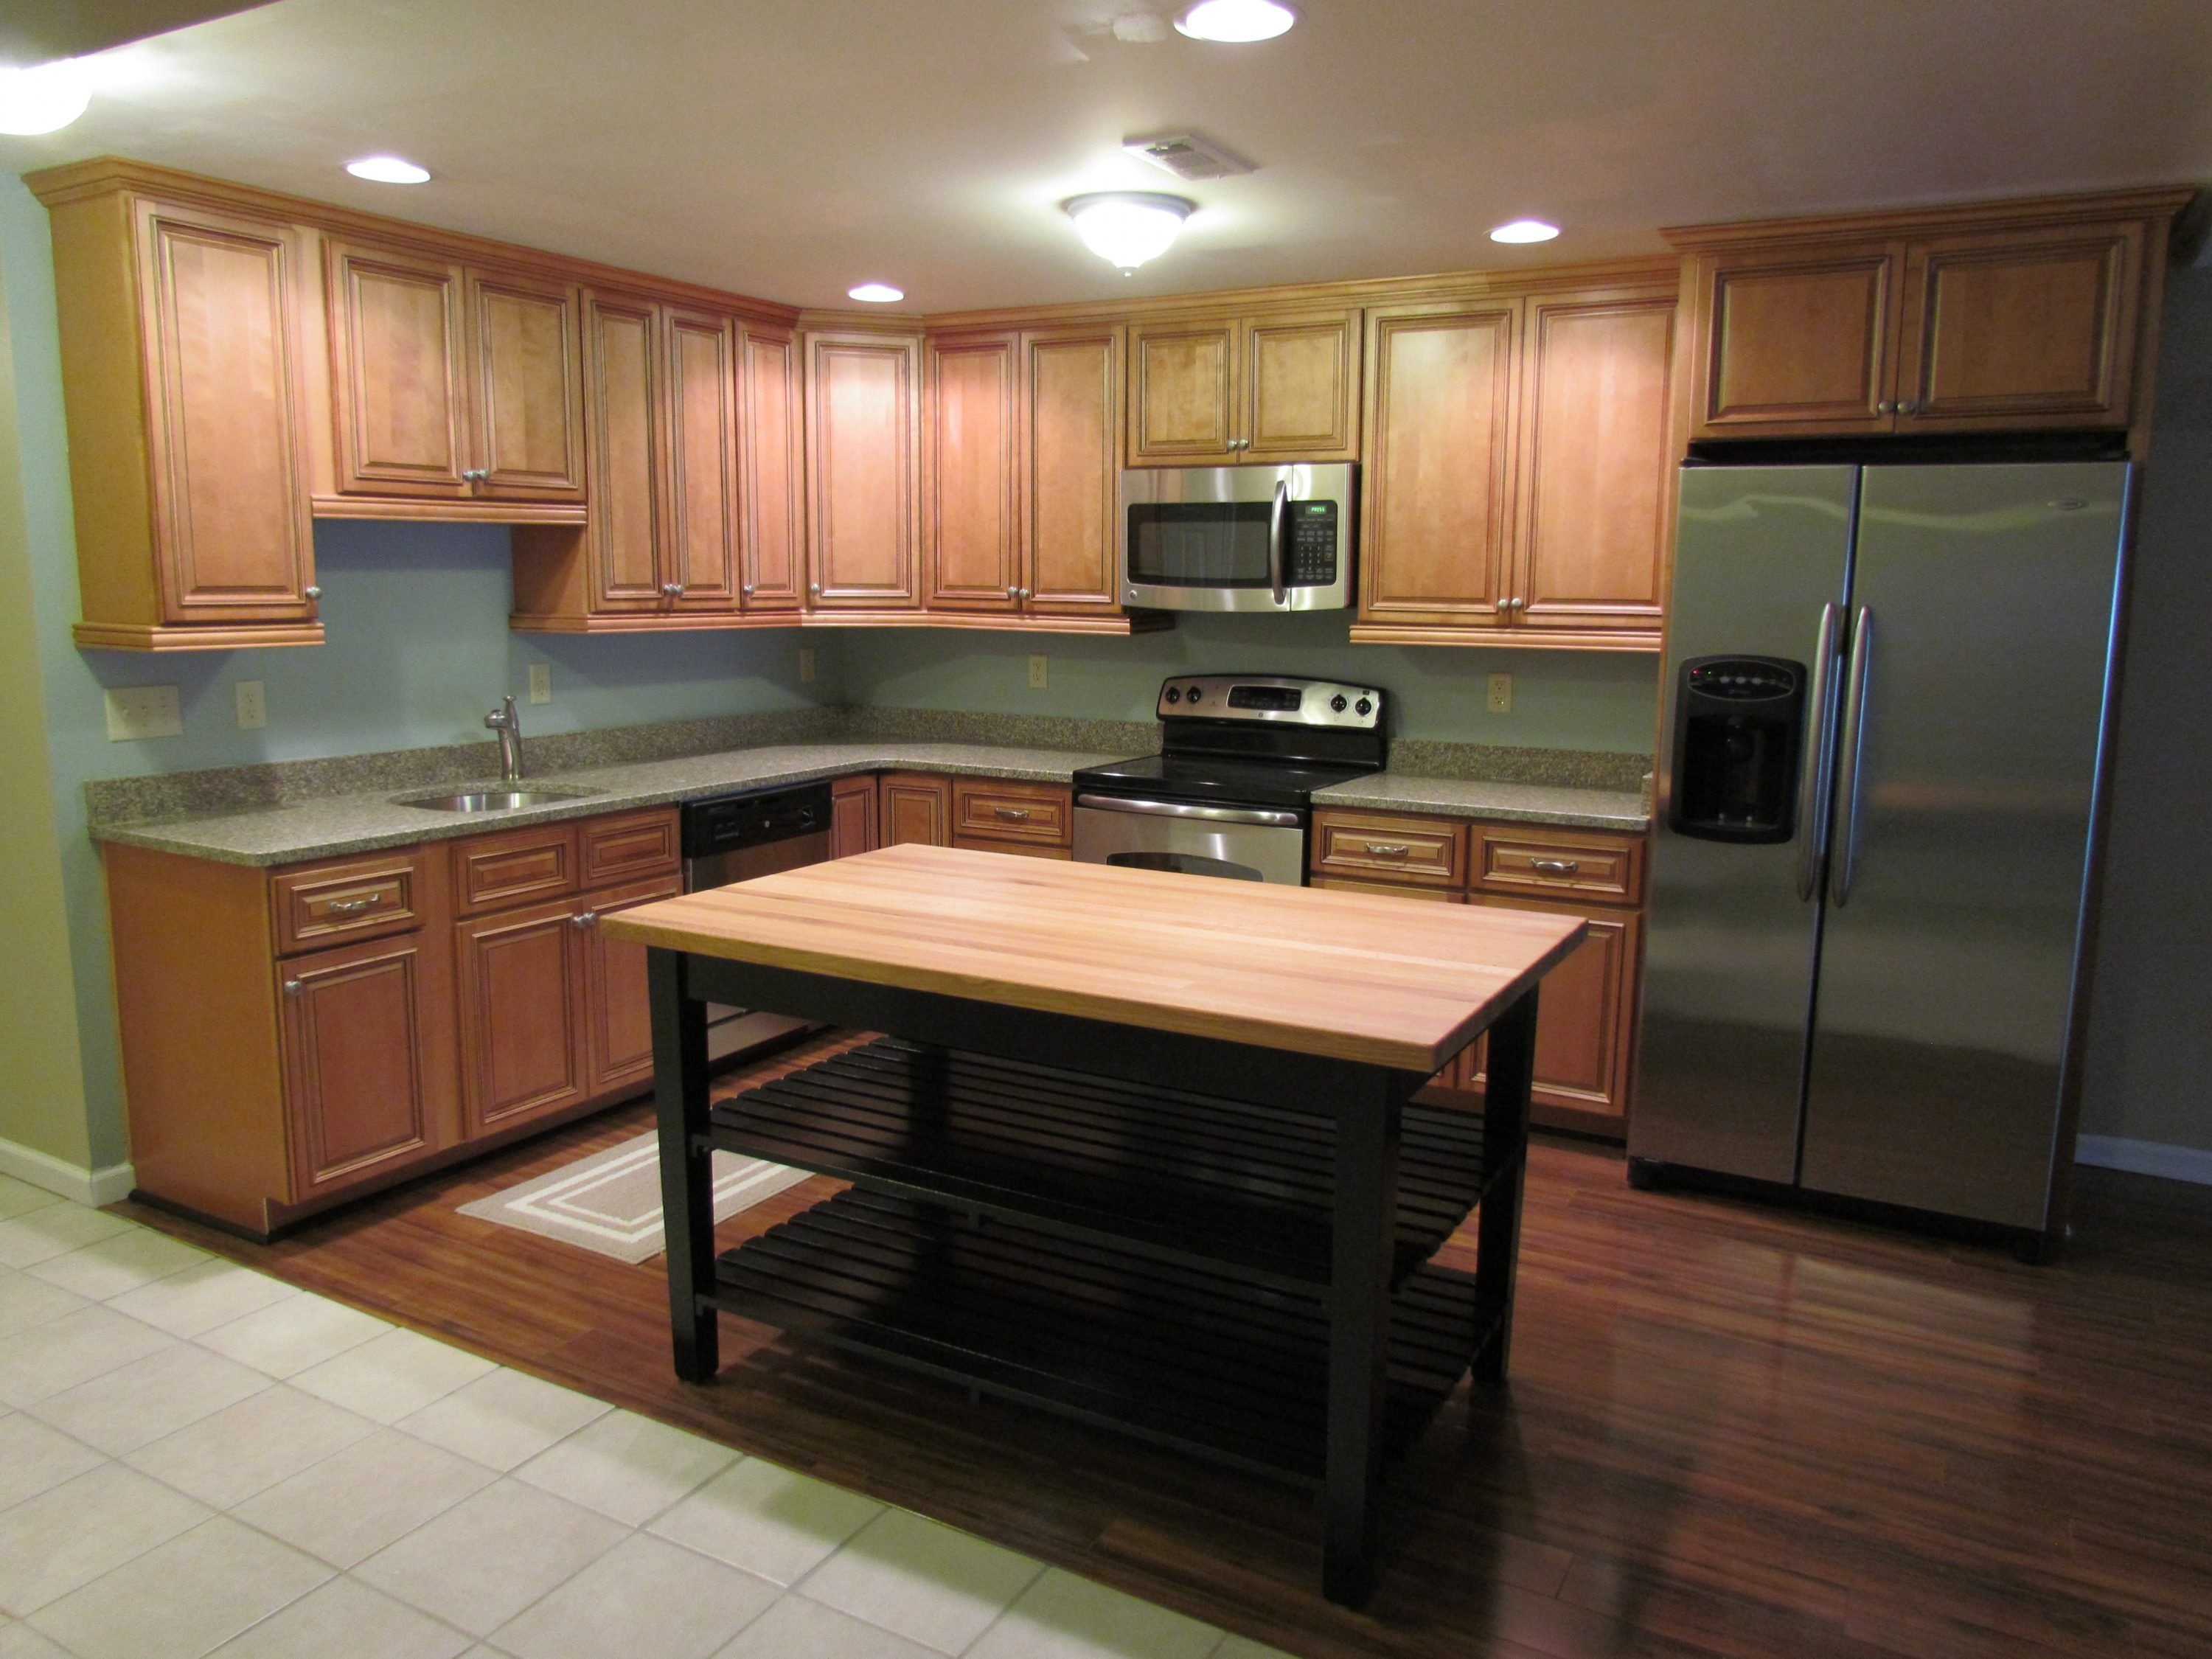 Finished Basement To Rent kitchen